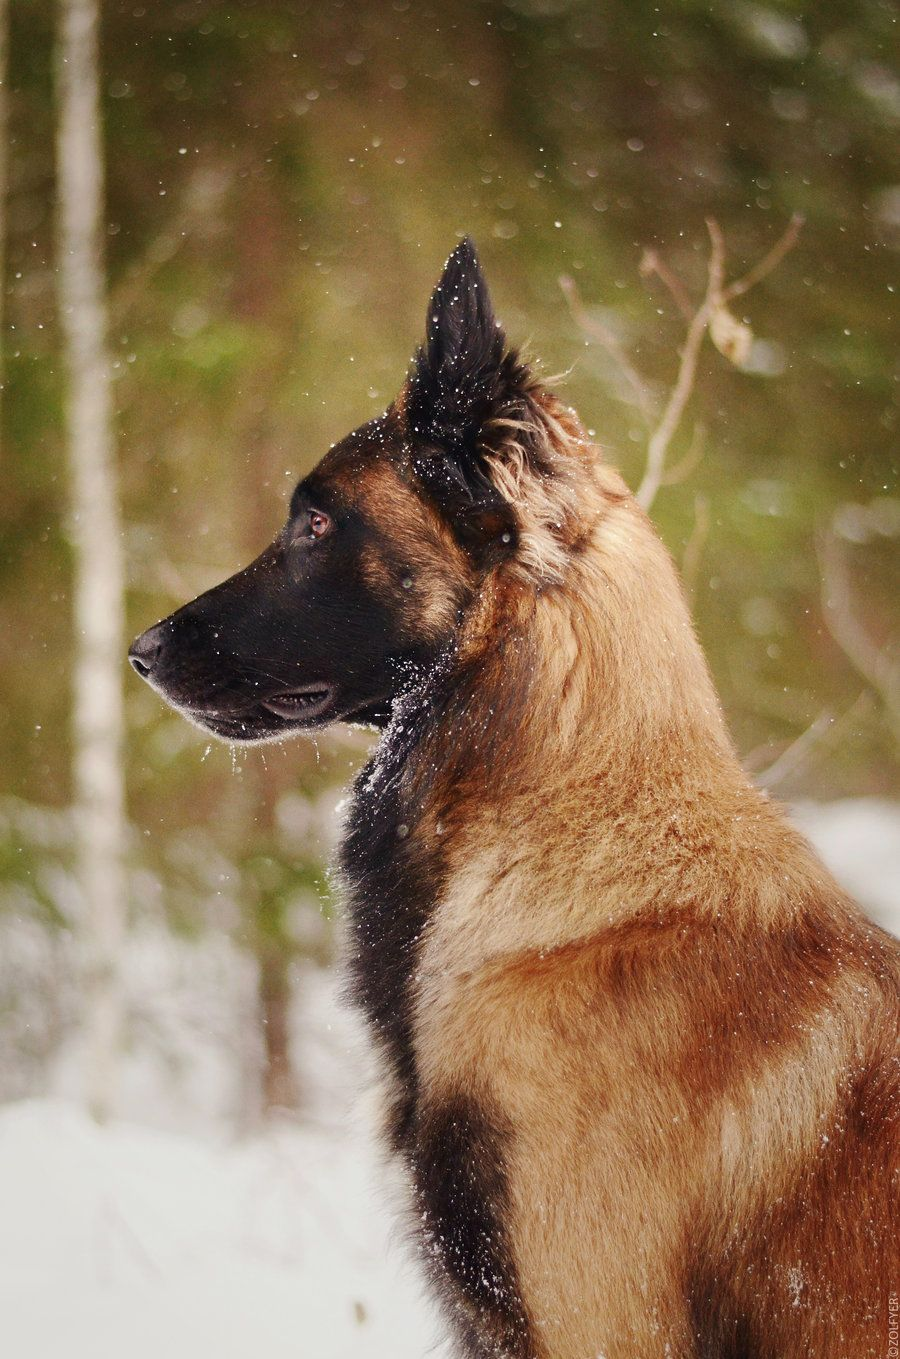 The Belgian Malinois I Want One Of These Guys Incredible Dogs